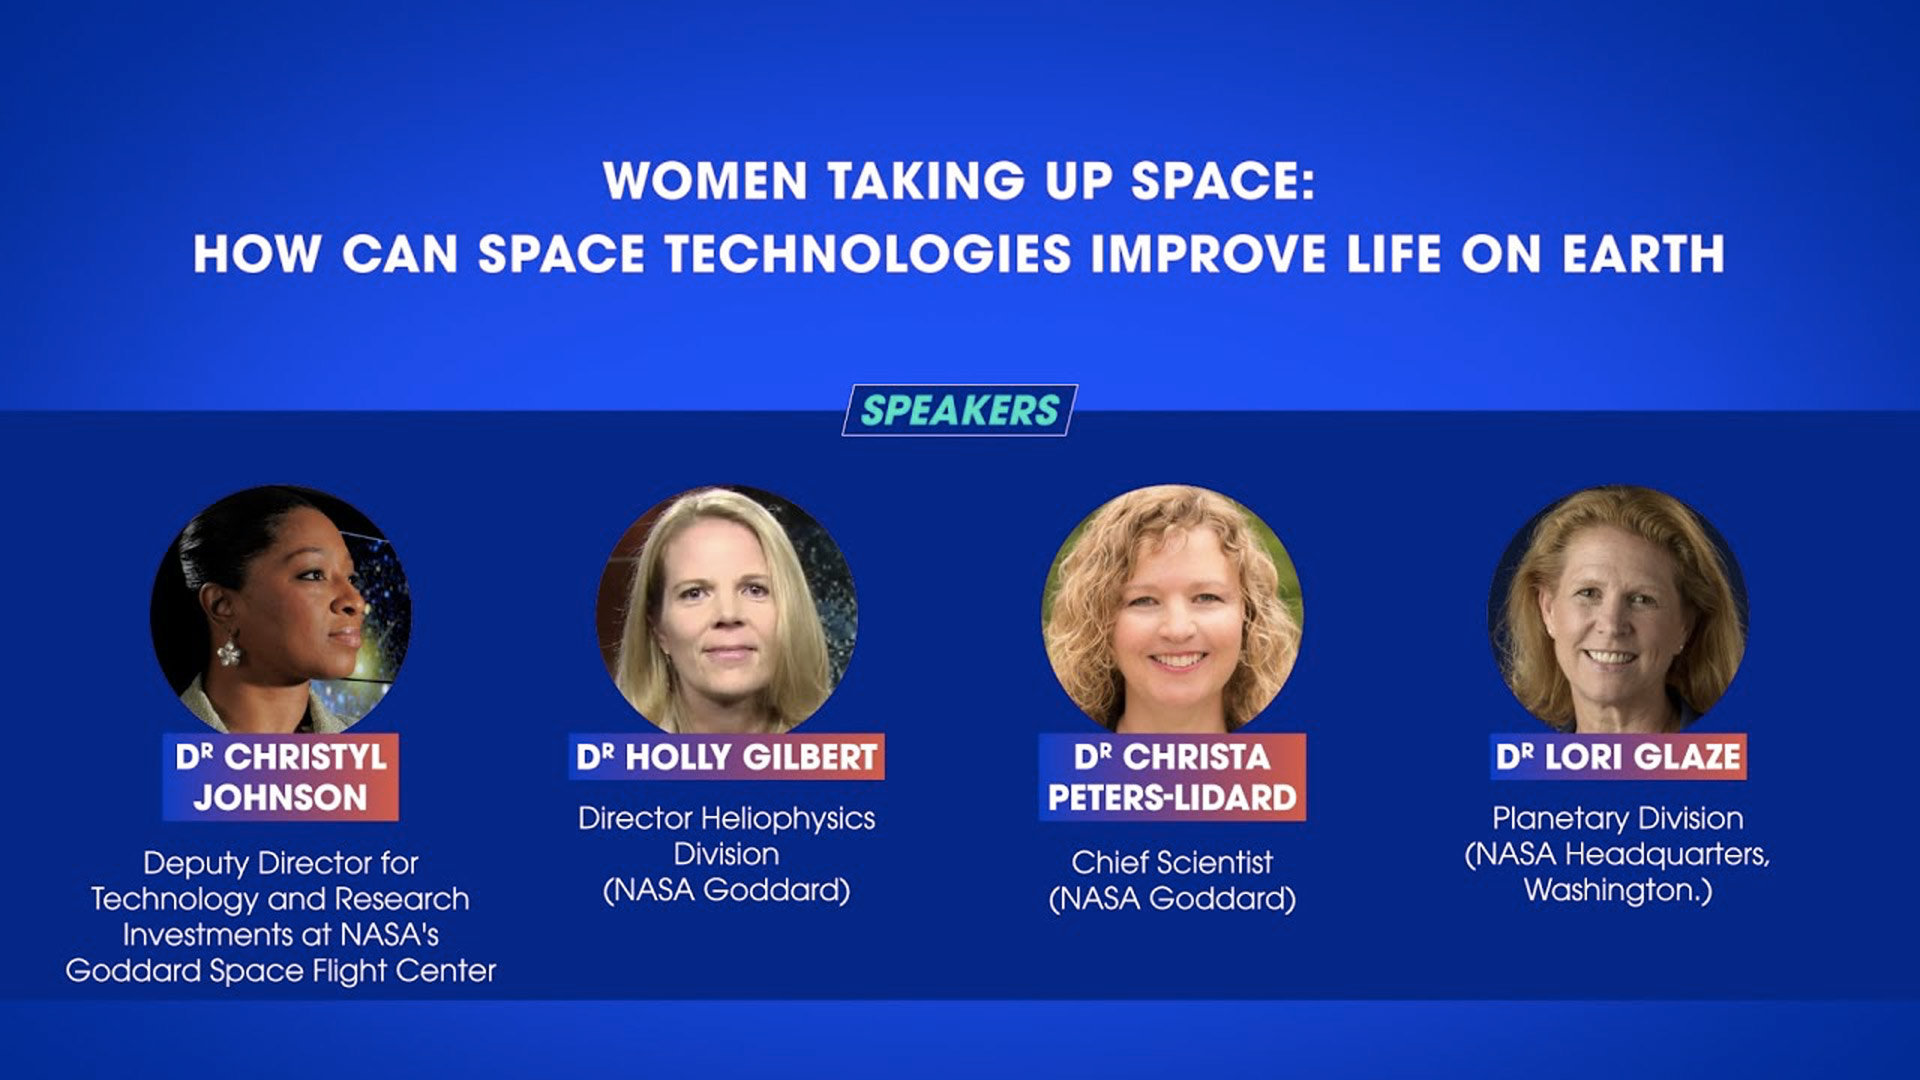 Women Taking Up Space: How can space technologies improve life on earth